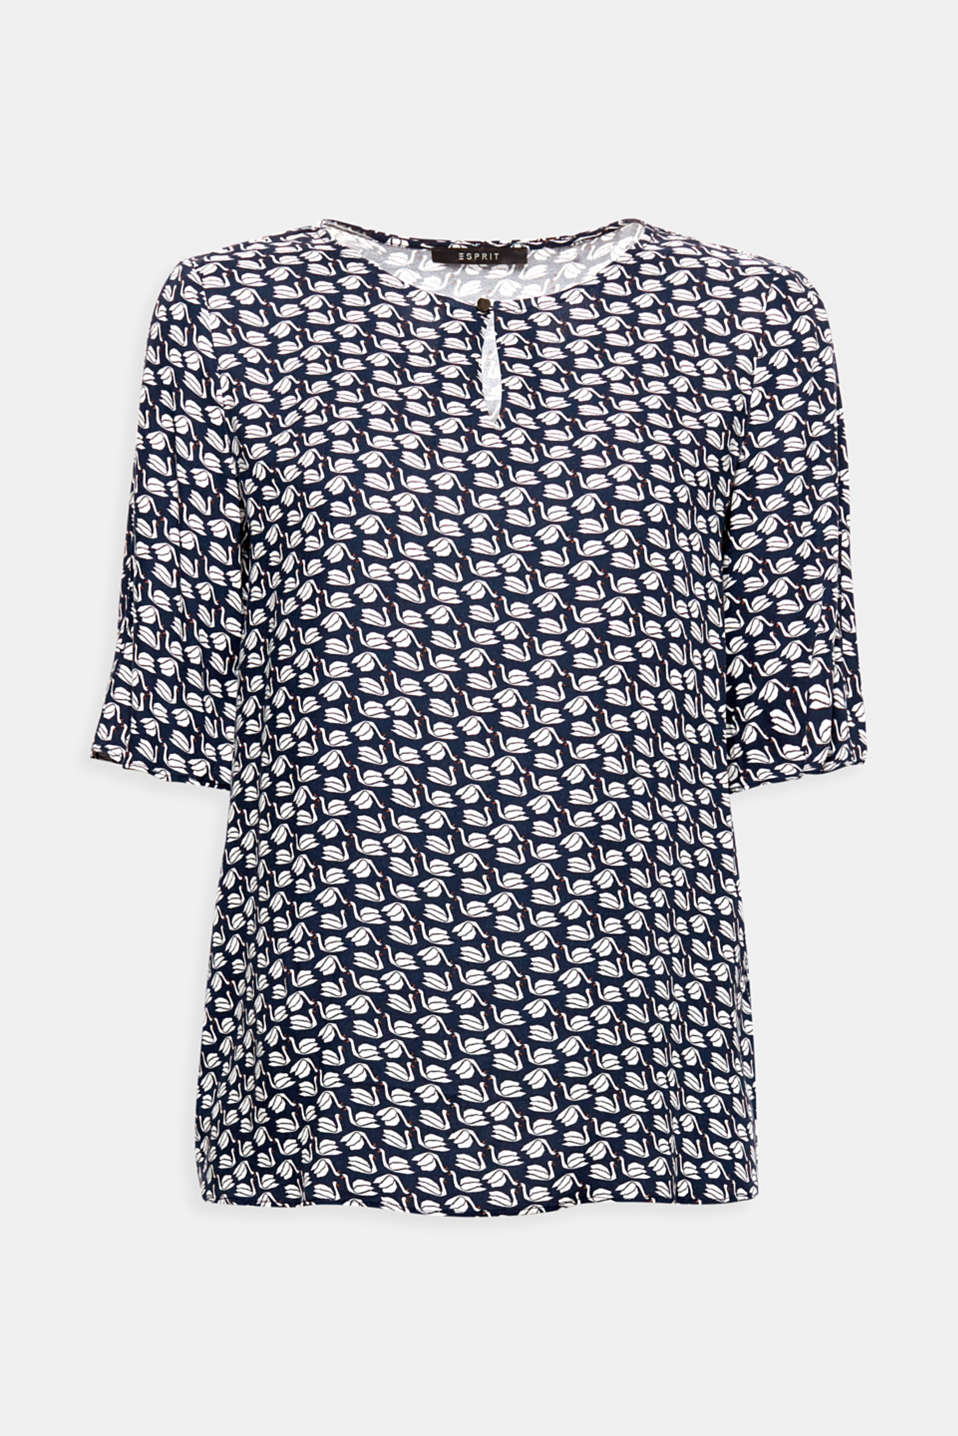 The slits in the sleeves, flowing material and decorative swan print give this blouse its airy look!